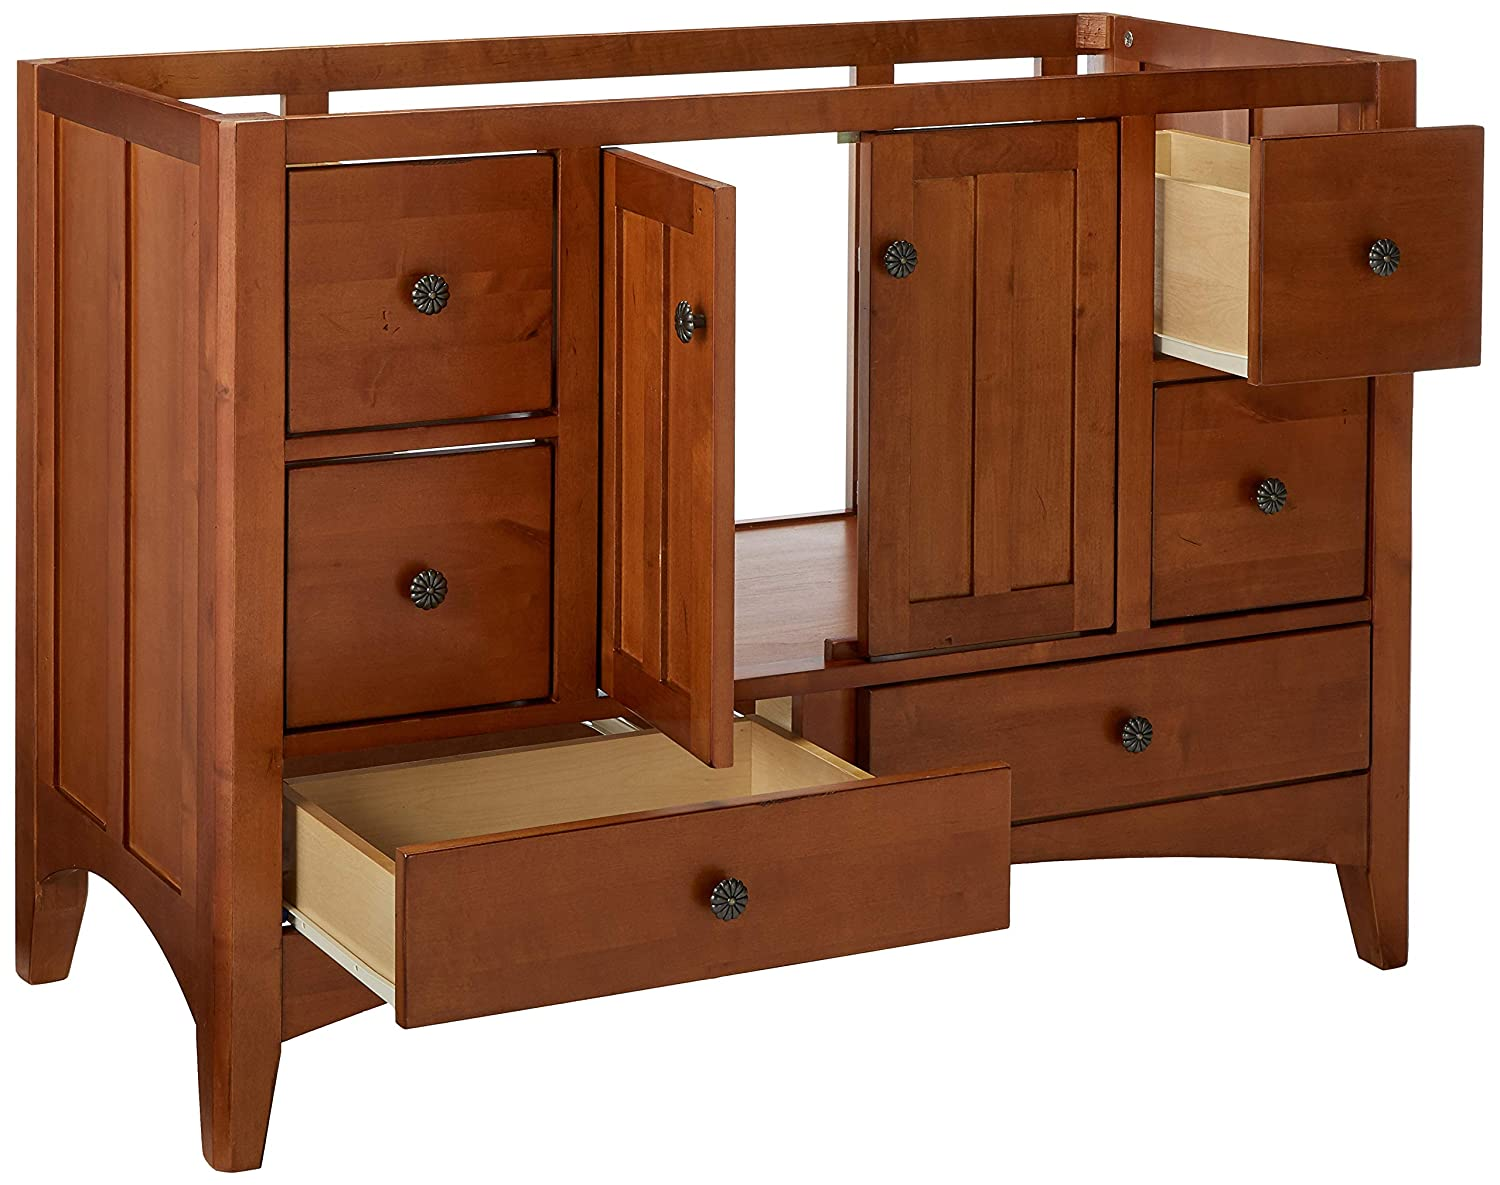 """SUNNYWOOD PRODUCTS Expressions 48"""" Wood Vanity Cabinet ..."""